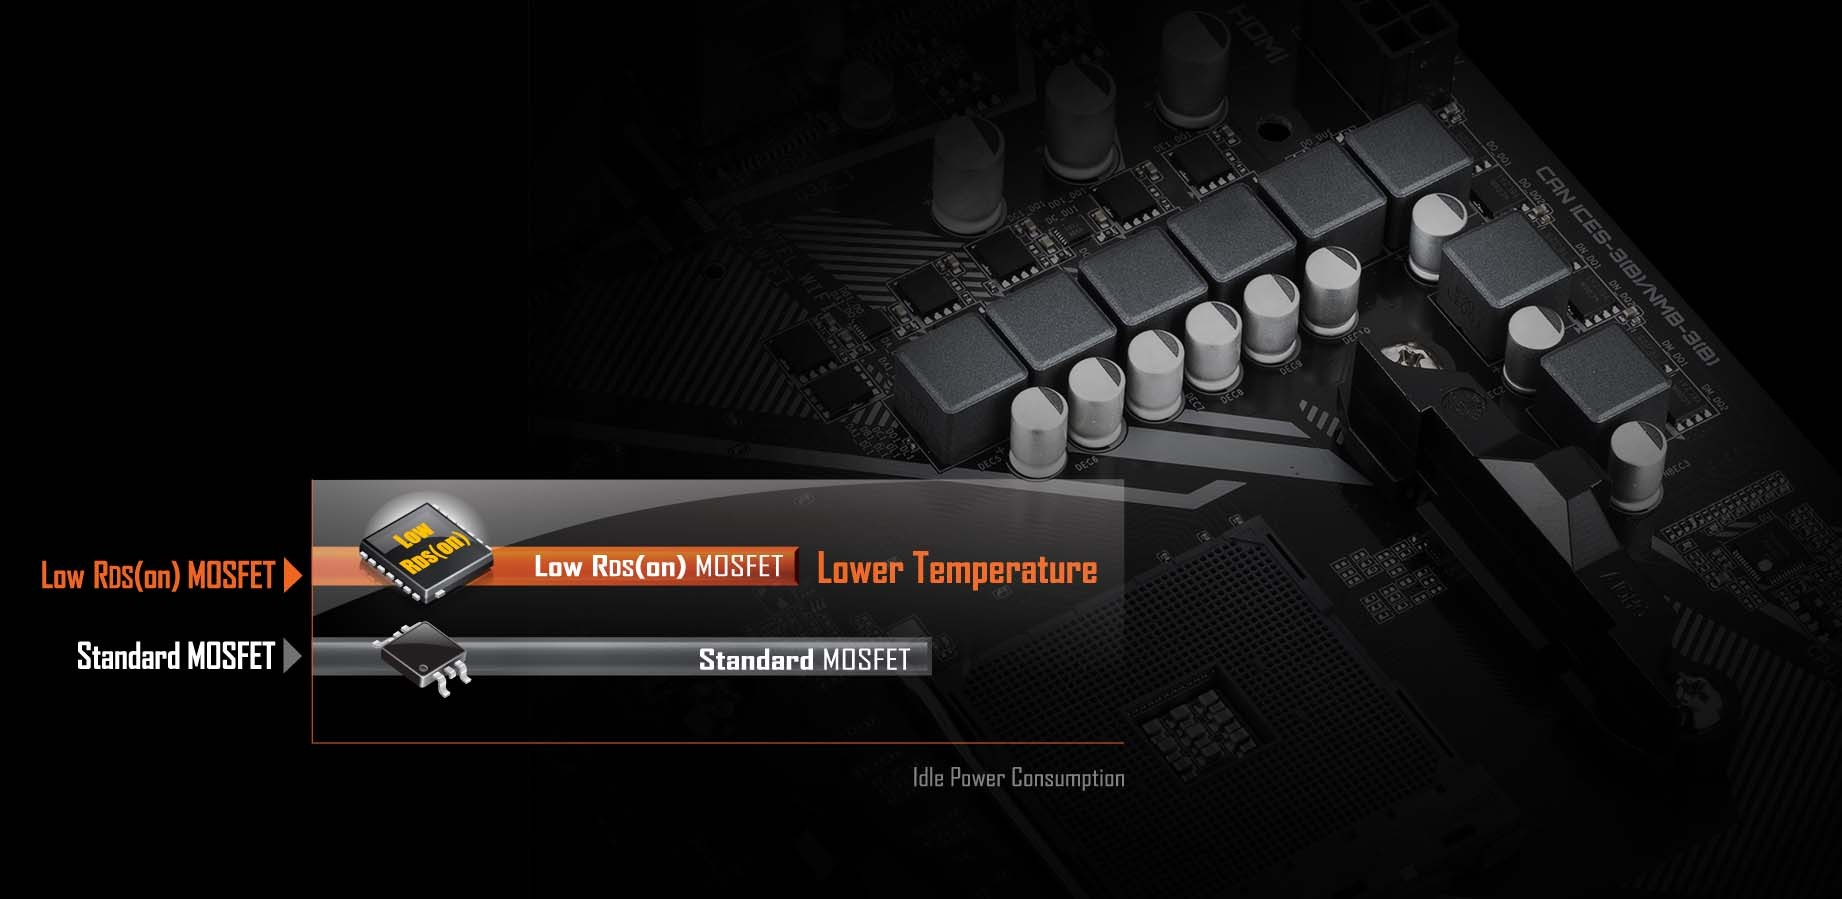 Low RDS(on) MOSFETs